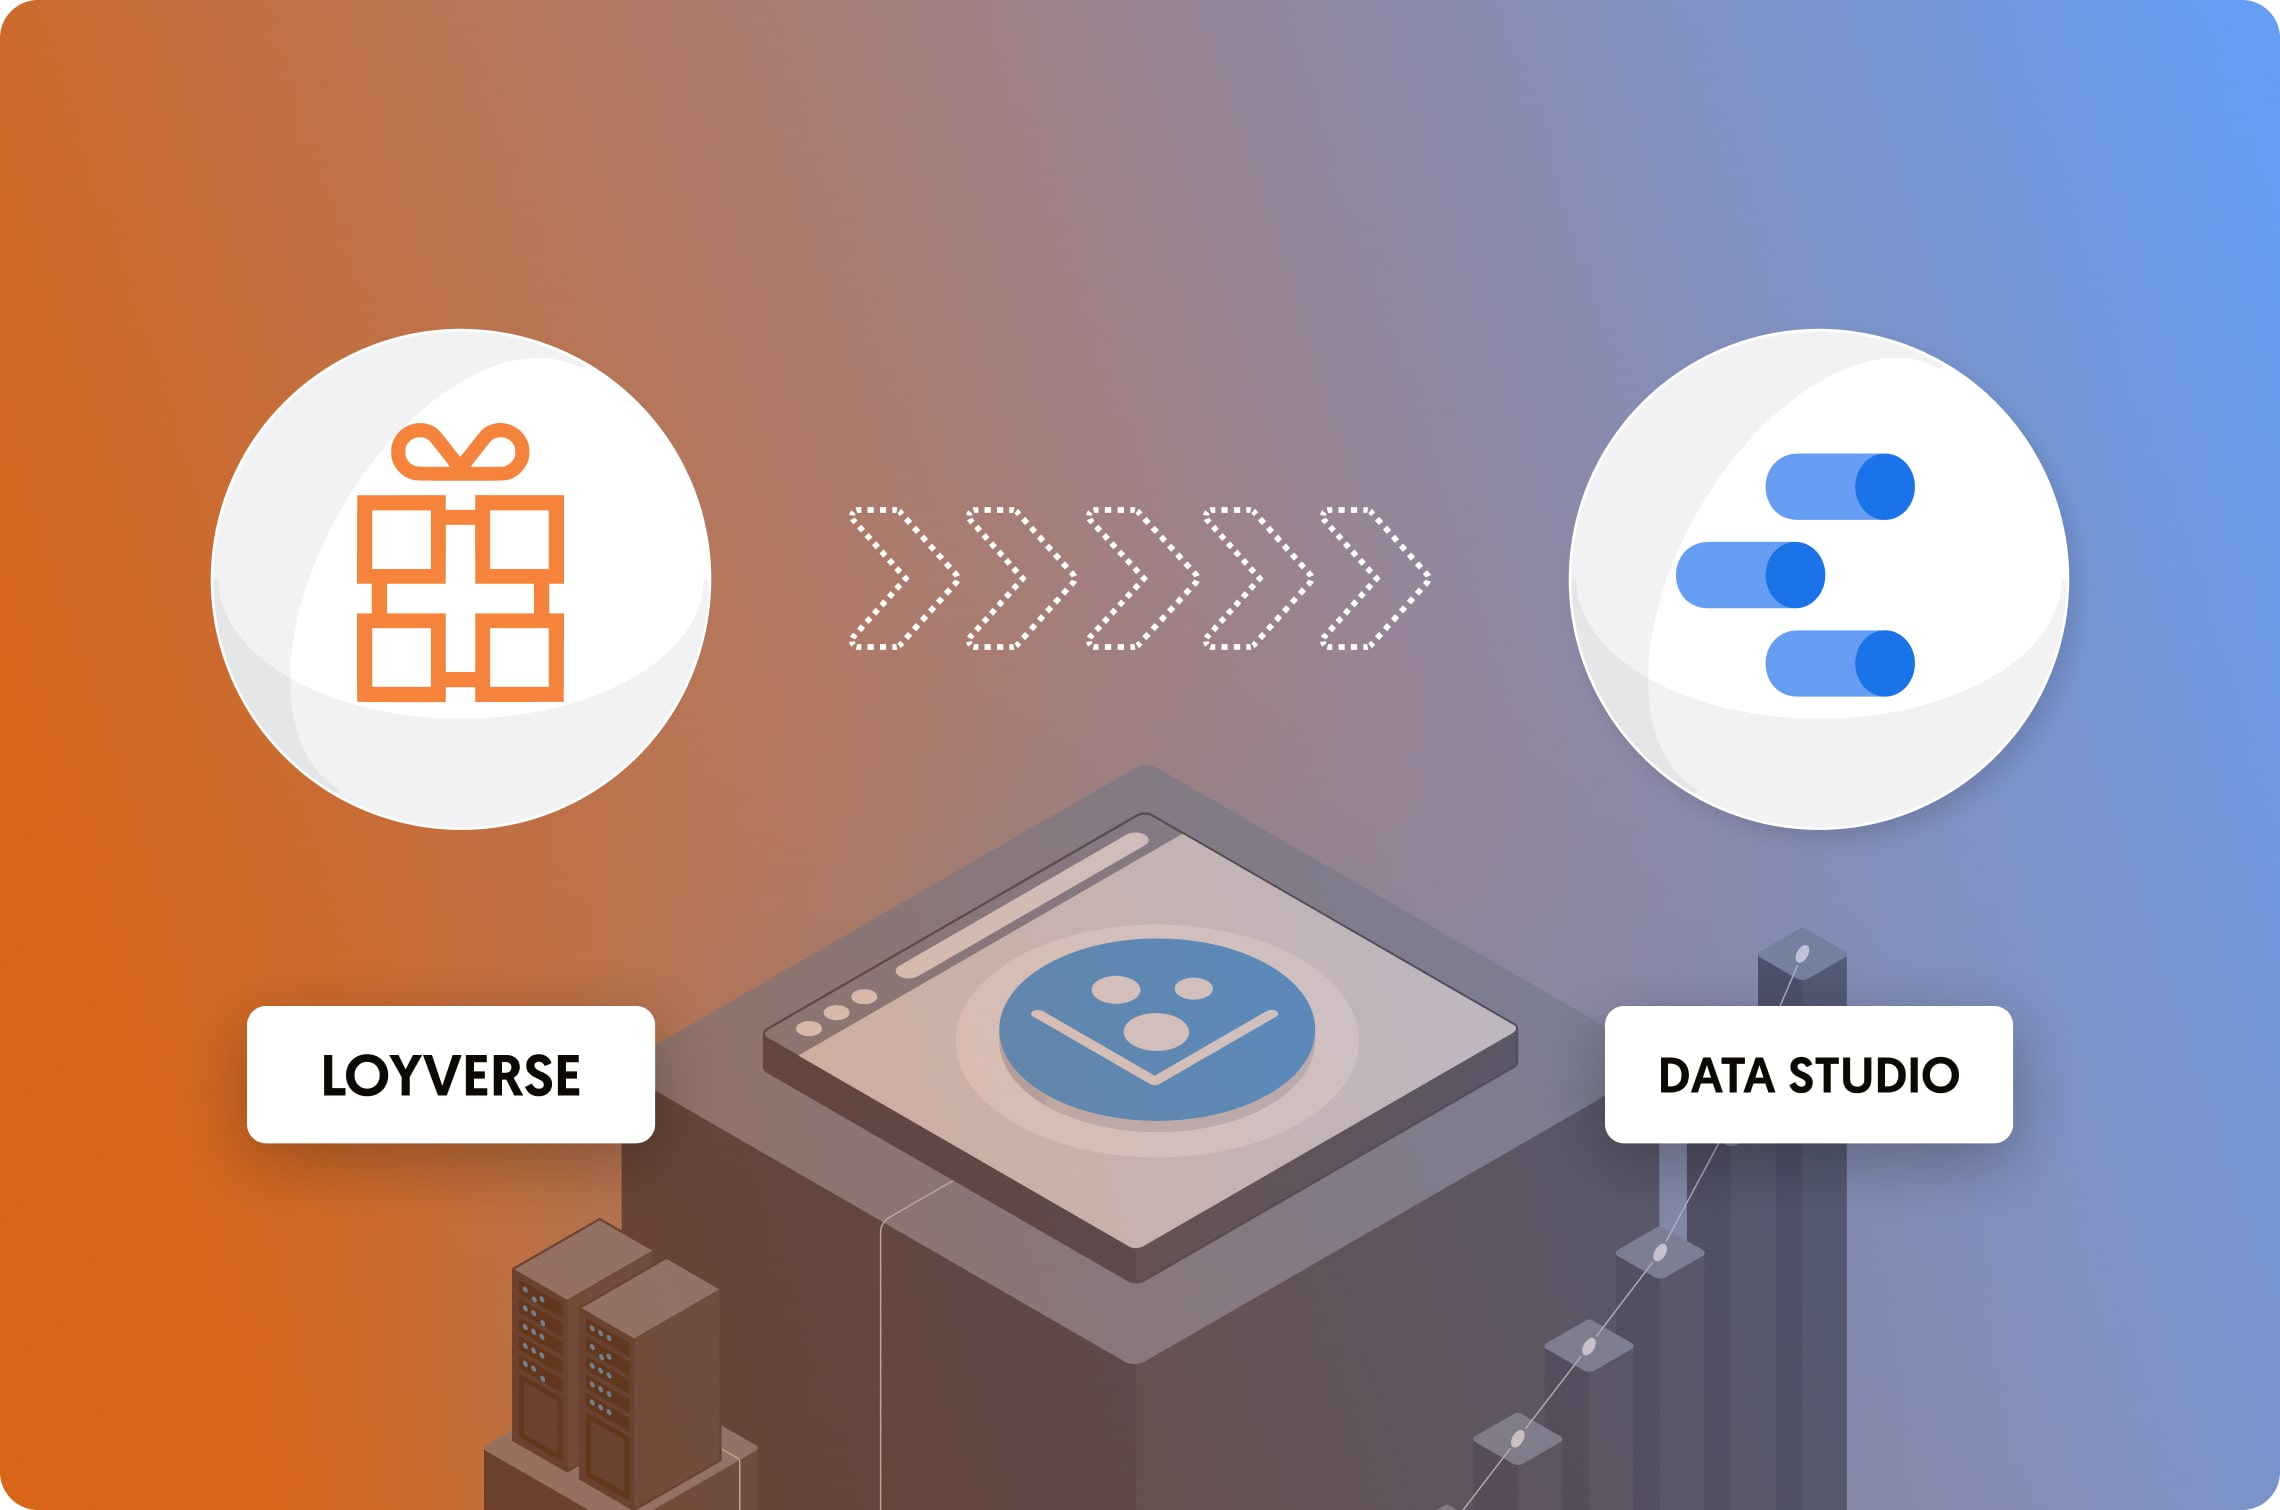 How to Connect Loyverse to Google Data Studio with Dataddo